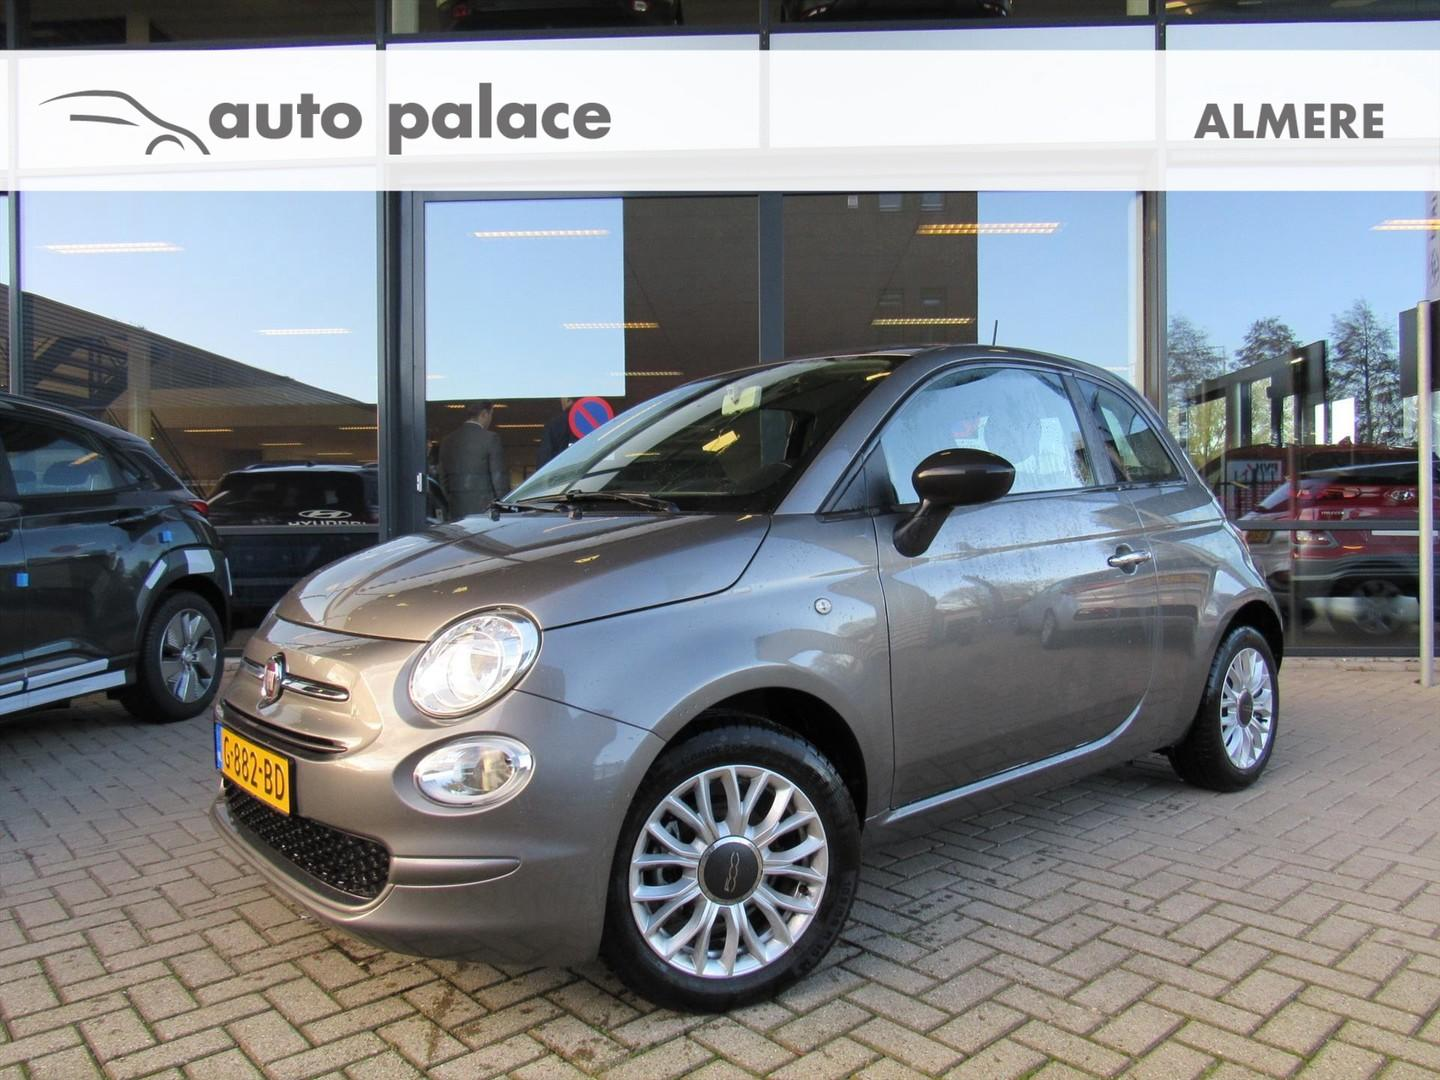 Fiat 500 Twinair turbo 80pk young navi, metallic lmv